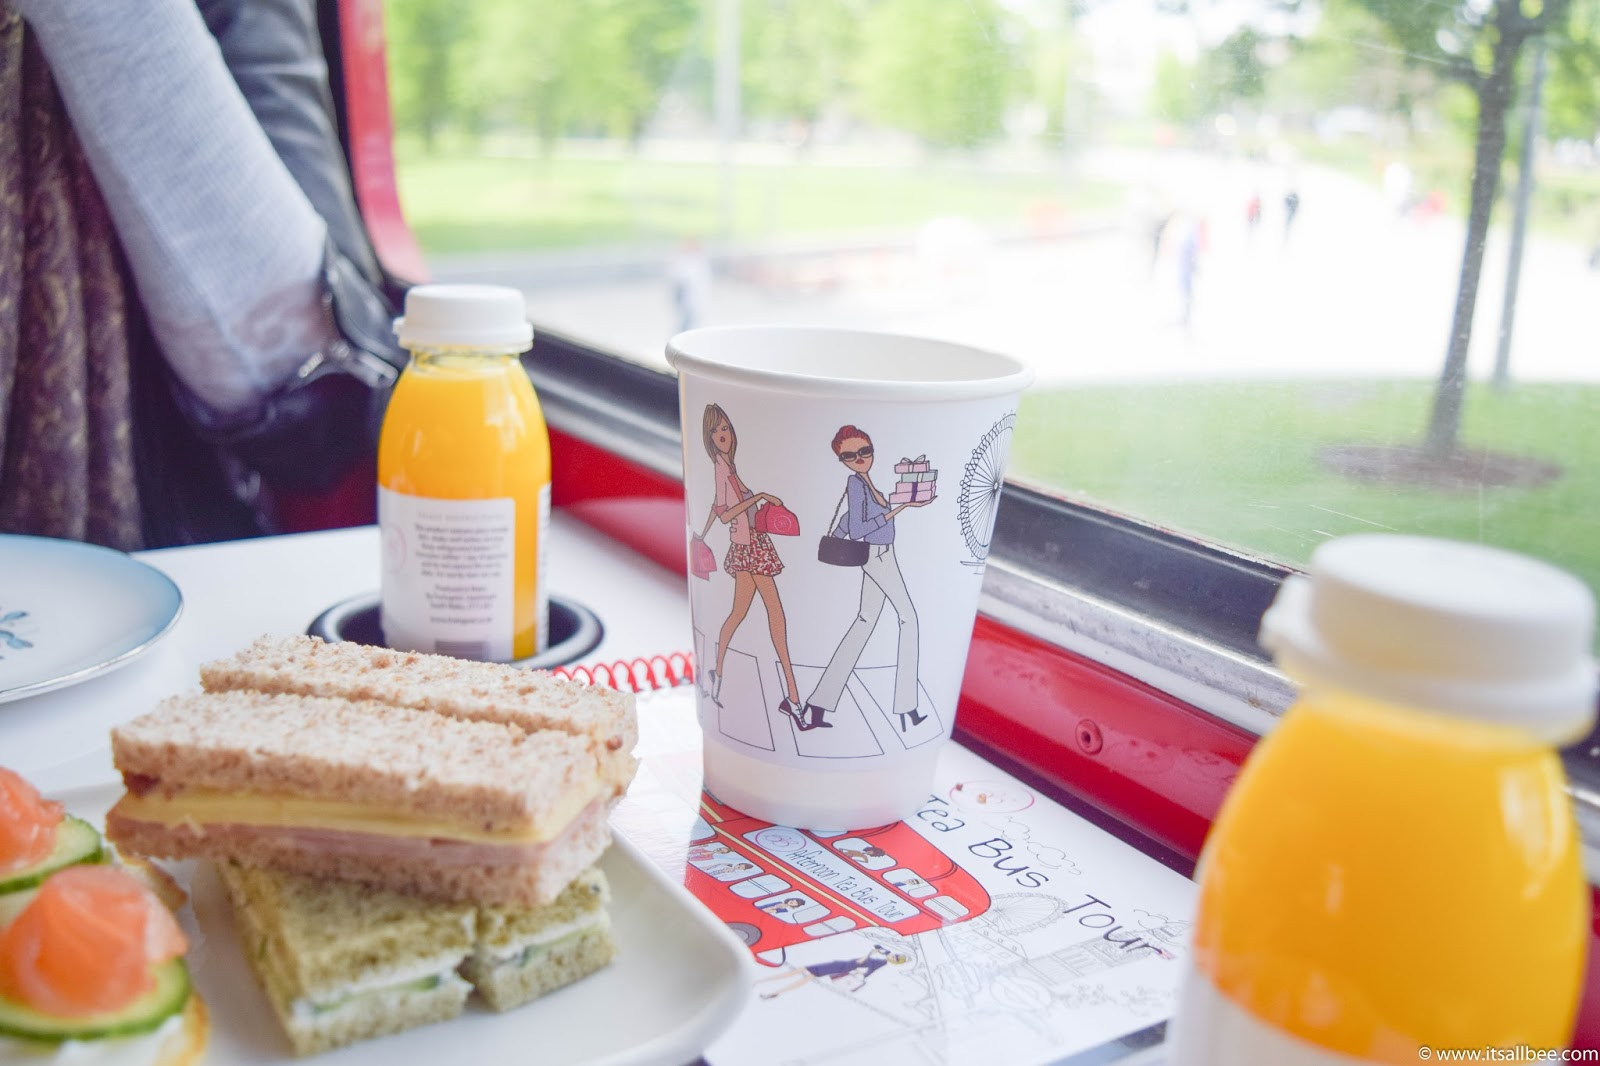 Afternoon Tea on a London bus, afternoon tea bus tour london, london afternoon tea bus tour